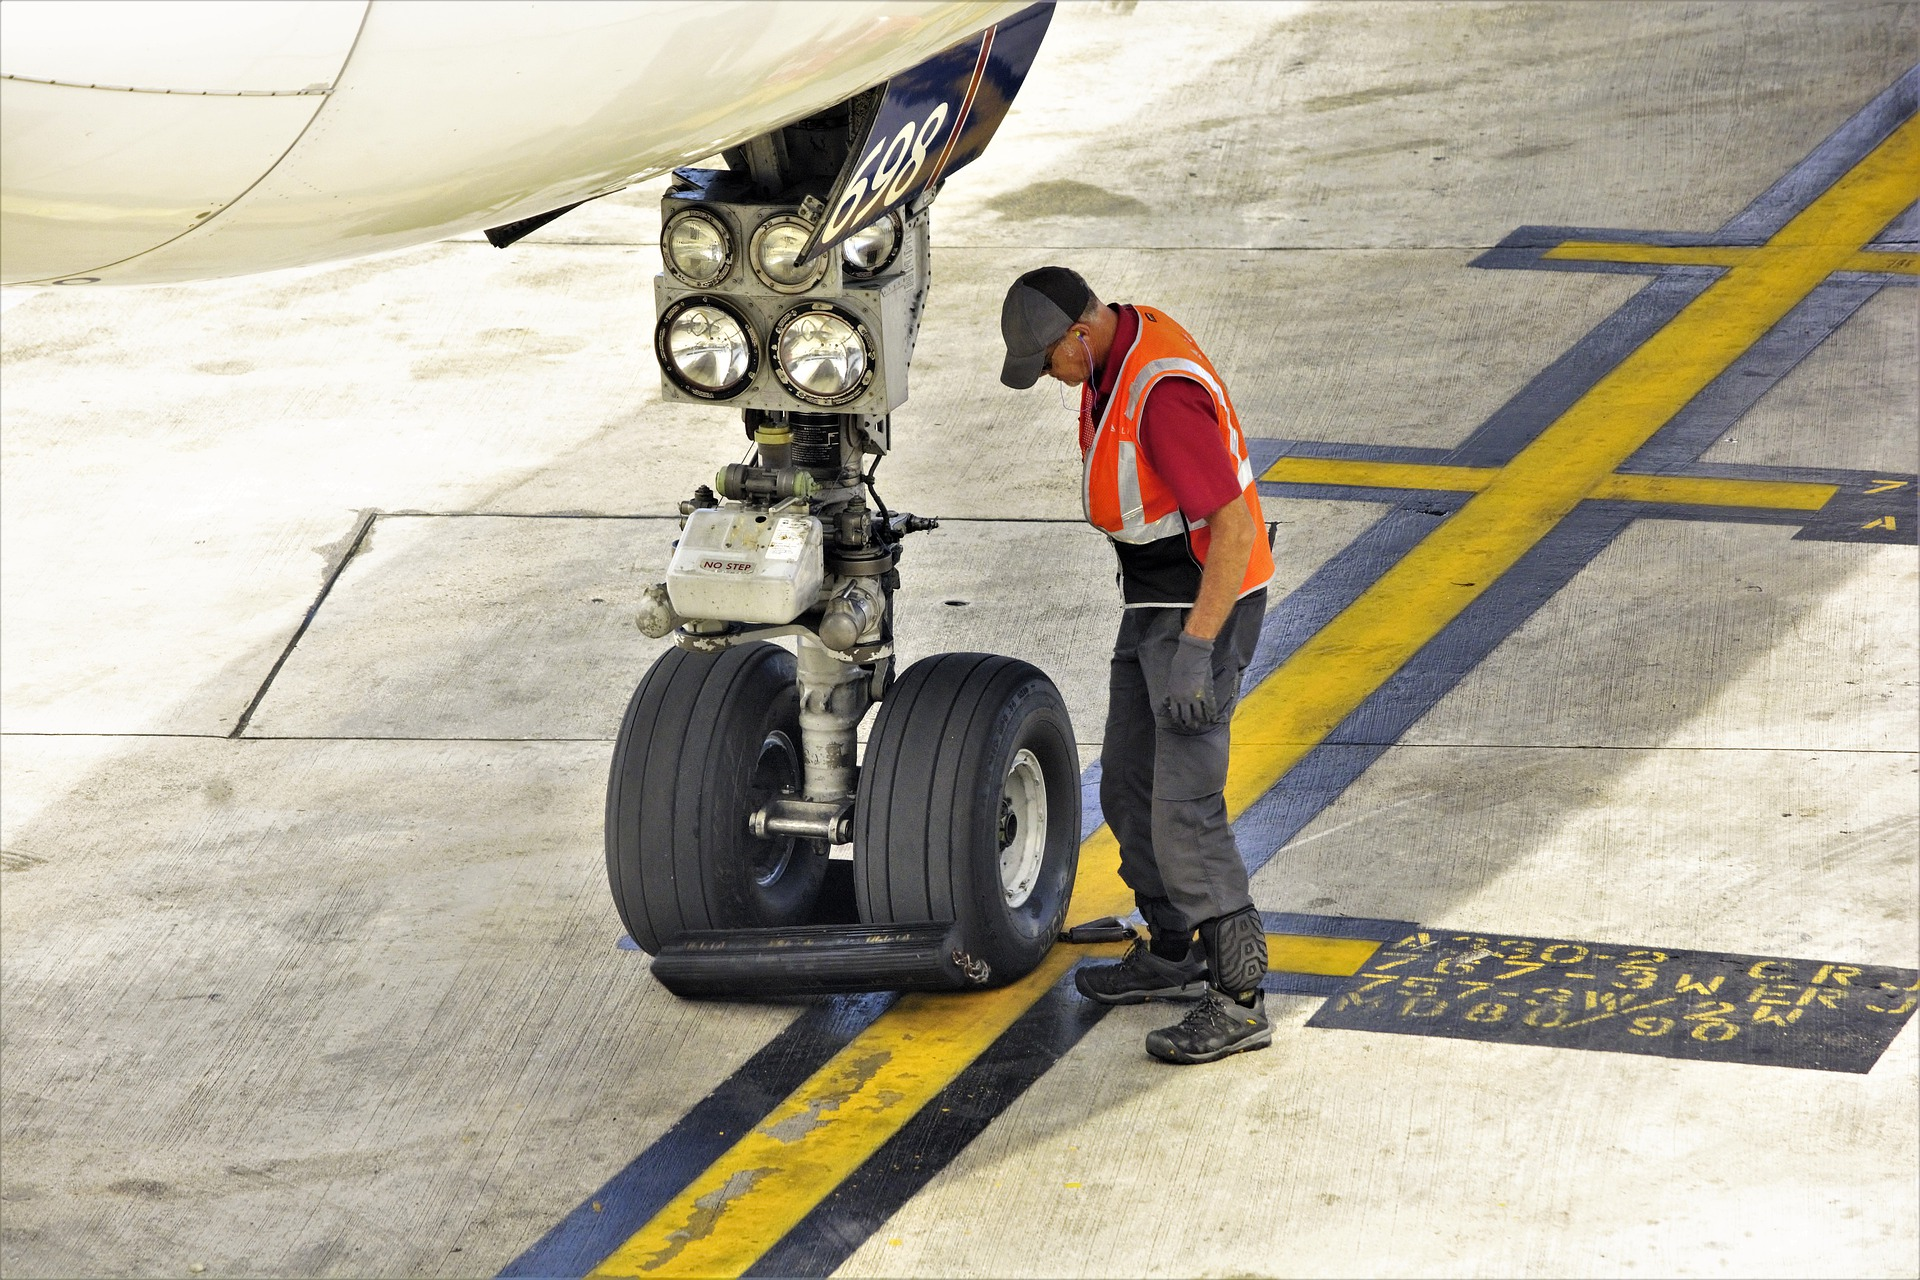 aircraft engineer return to service